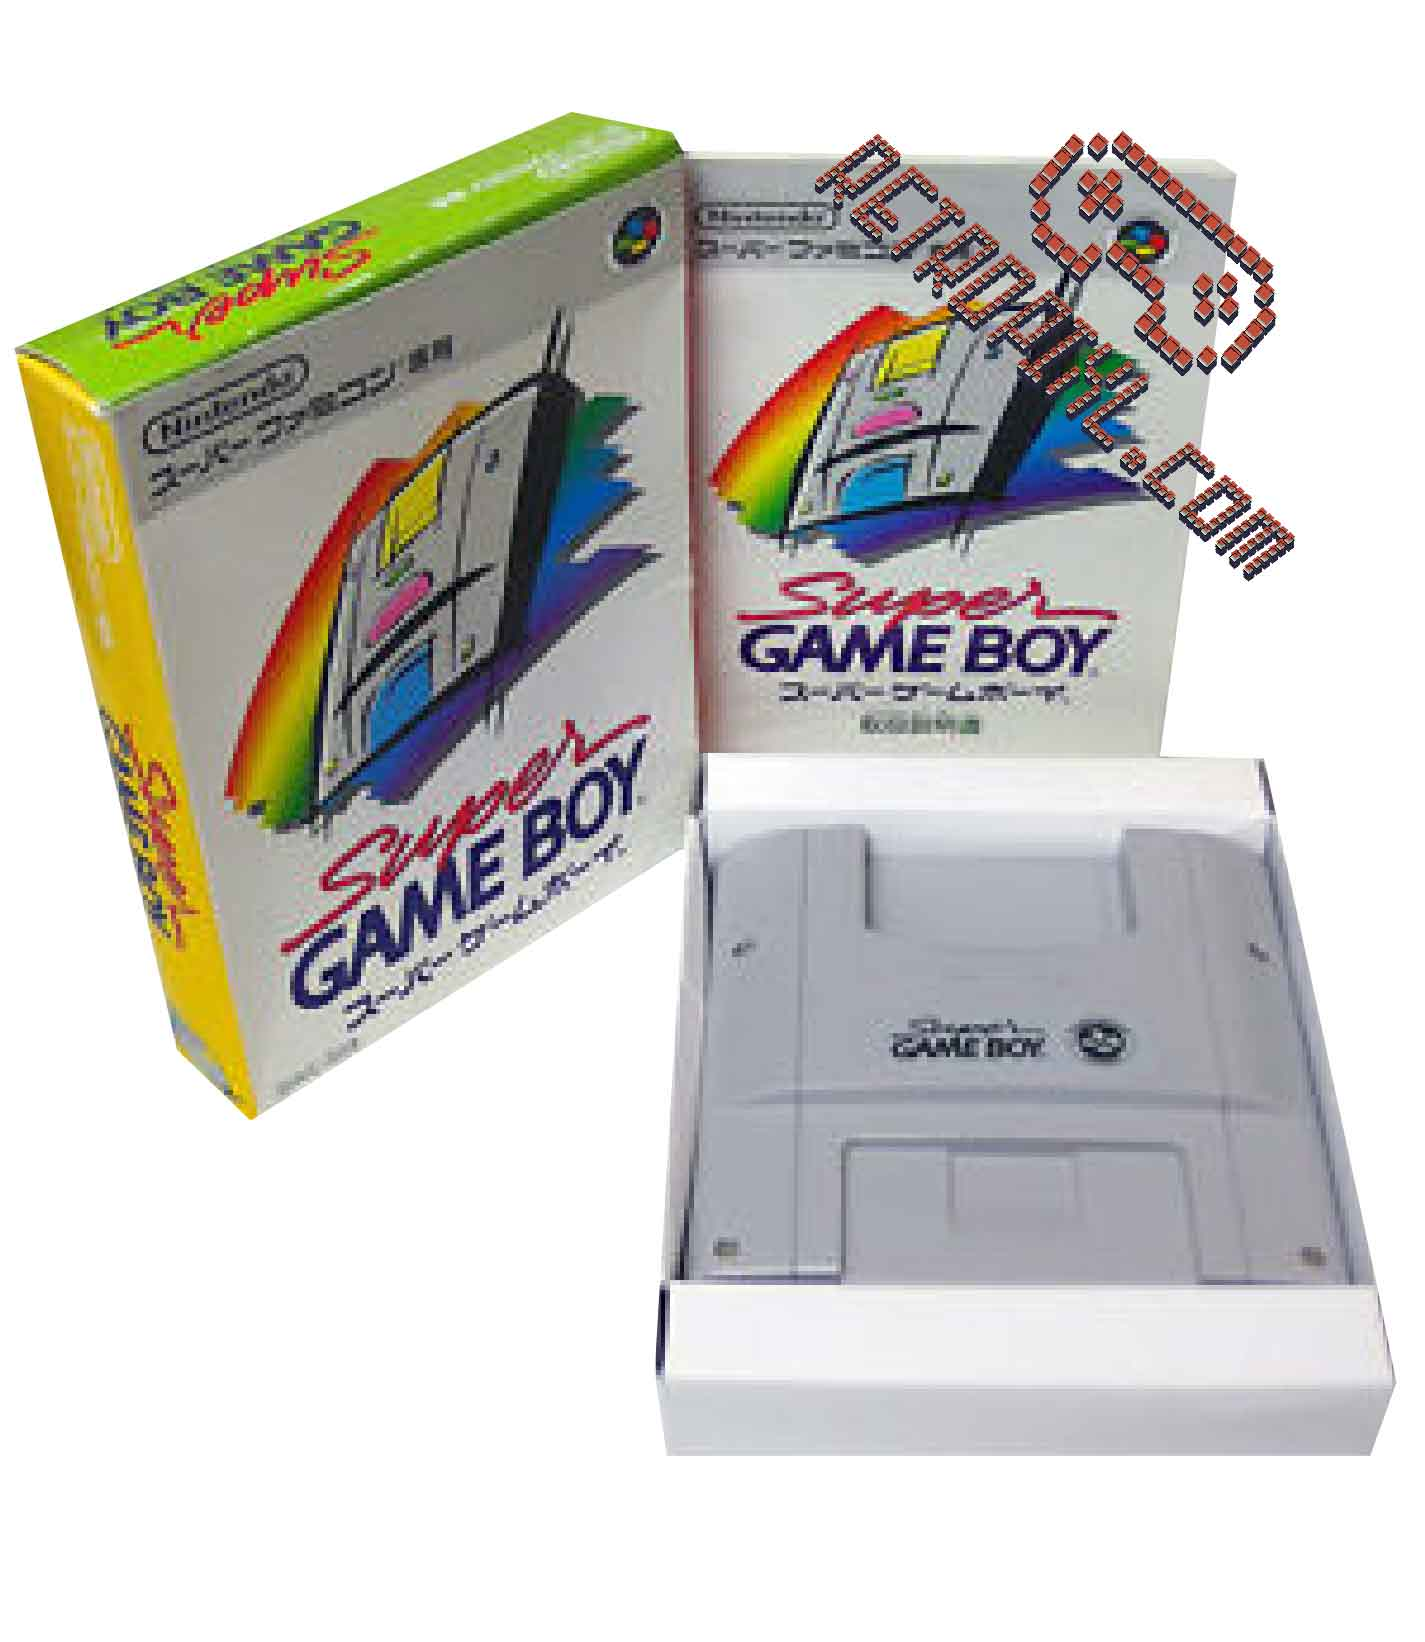 RetroPixl Retrogaming Accessory Nintendo Super Game Boy SNES